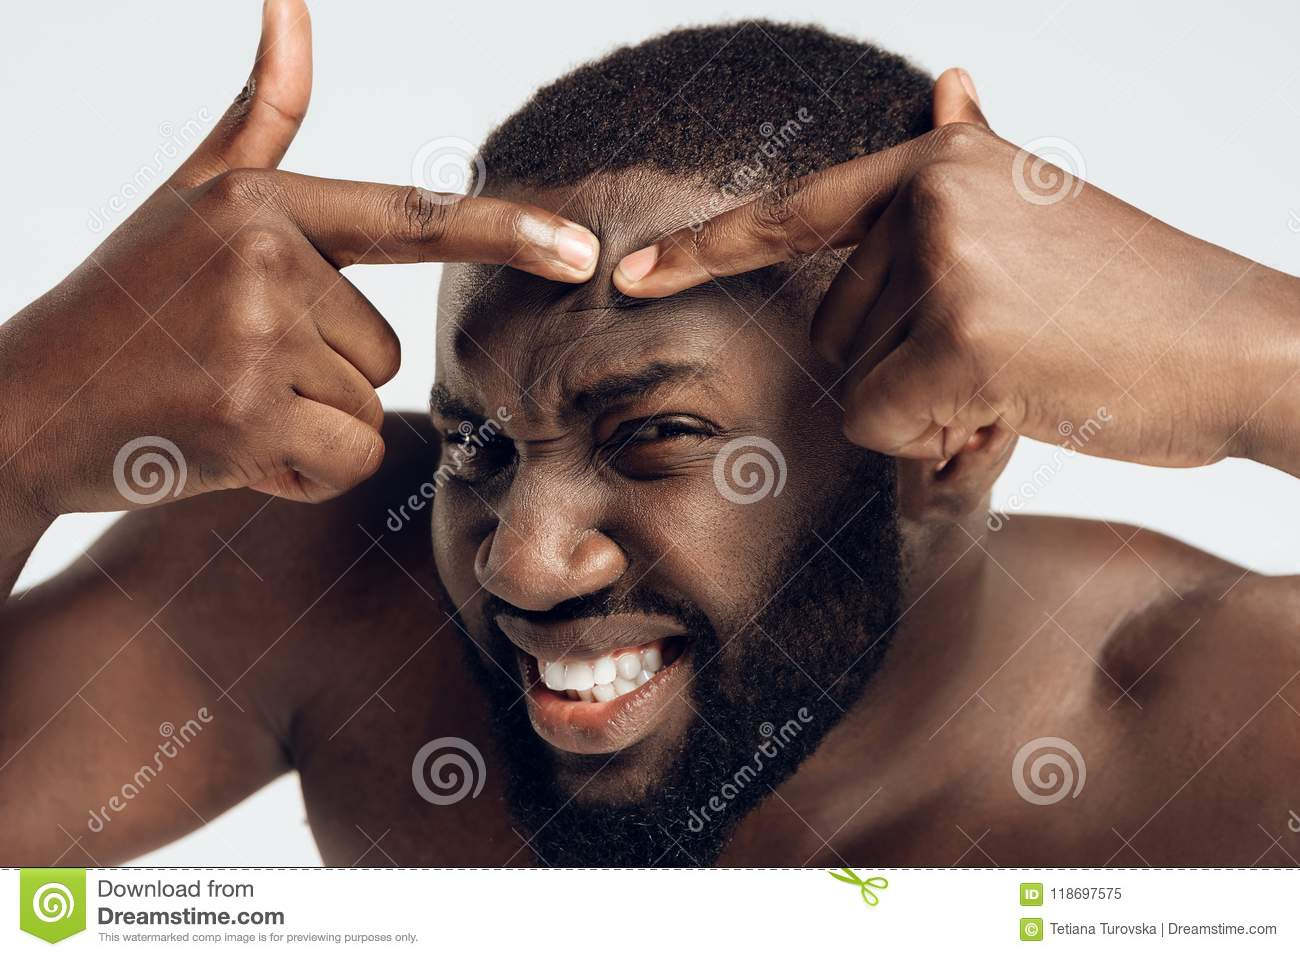 Enduring black man squeezes pimple on face. Acne.